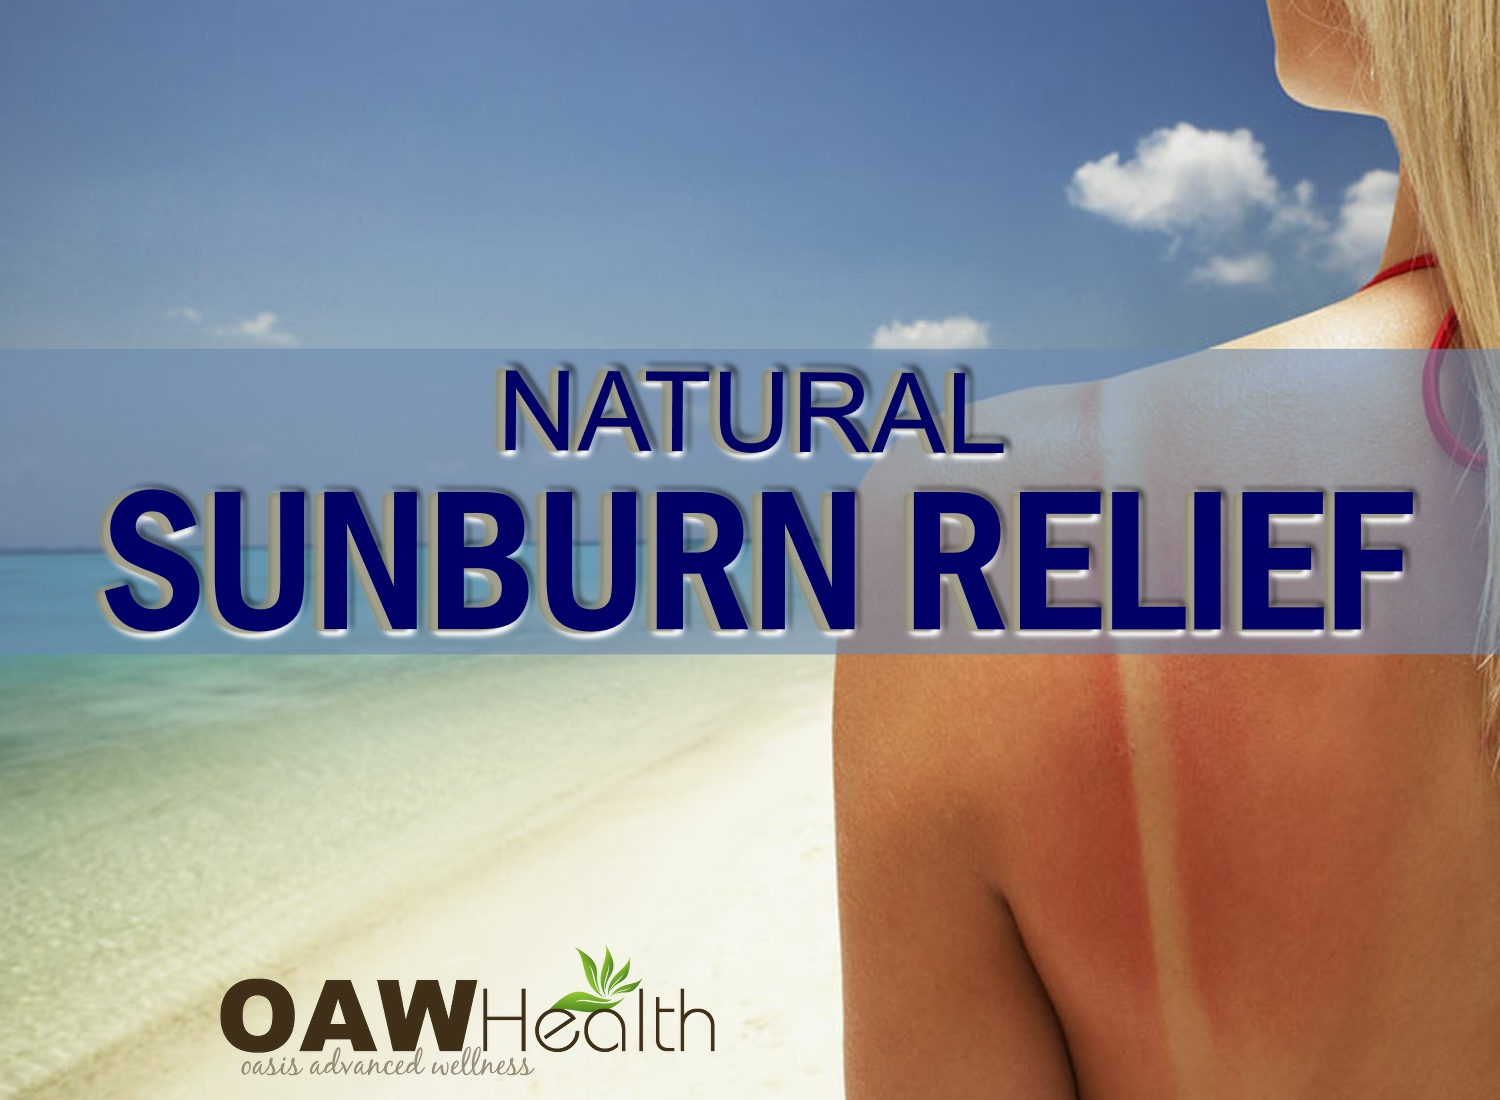 Natural Sunburn Relief